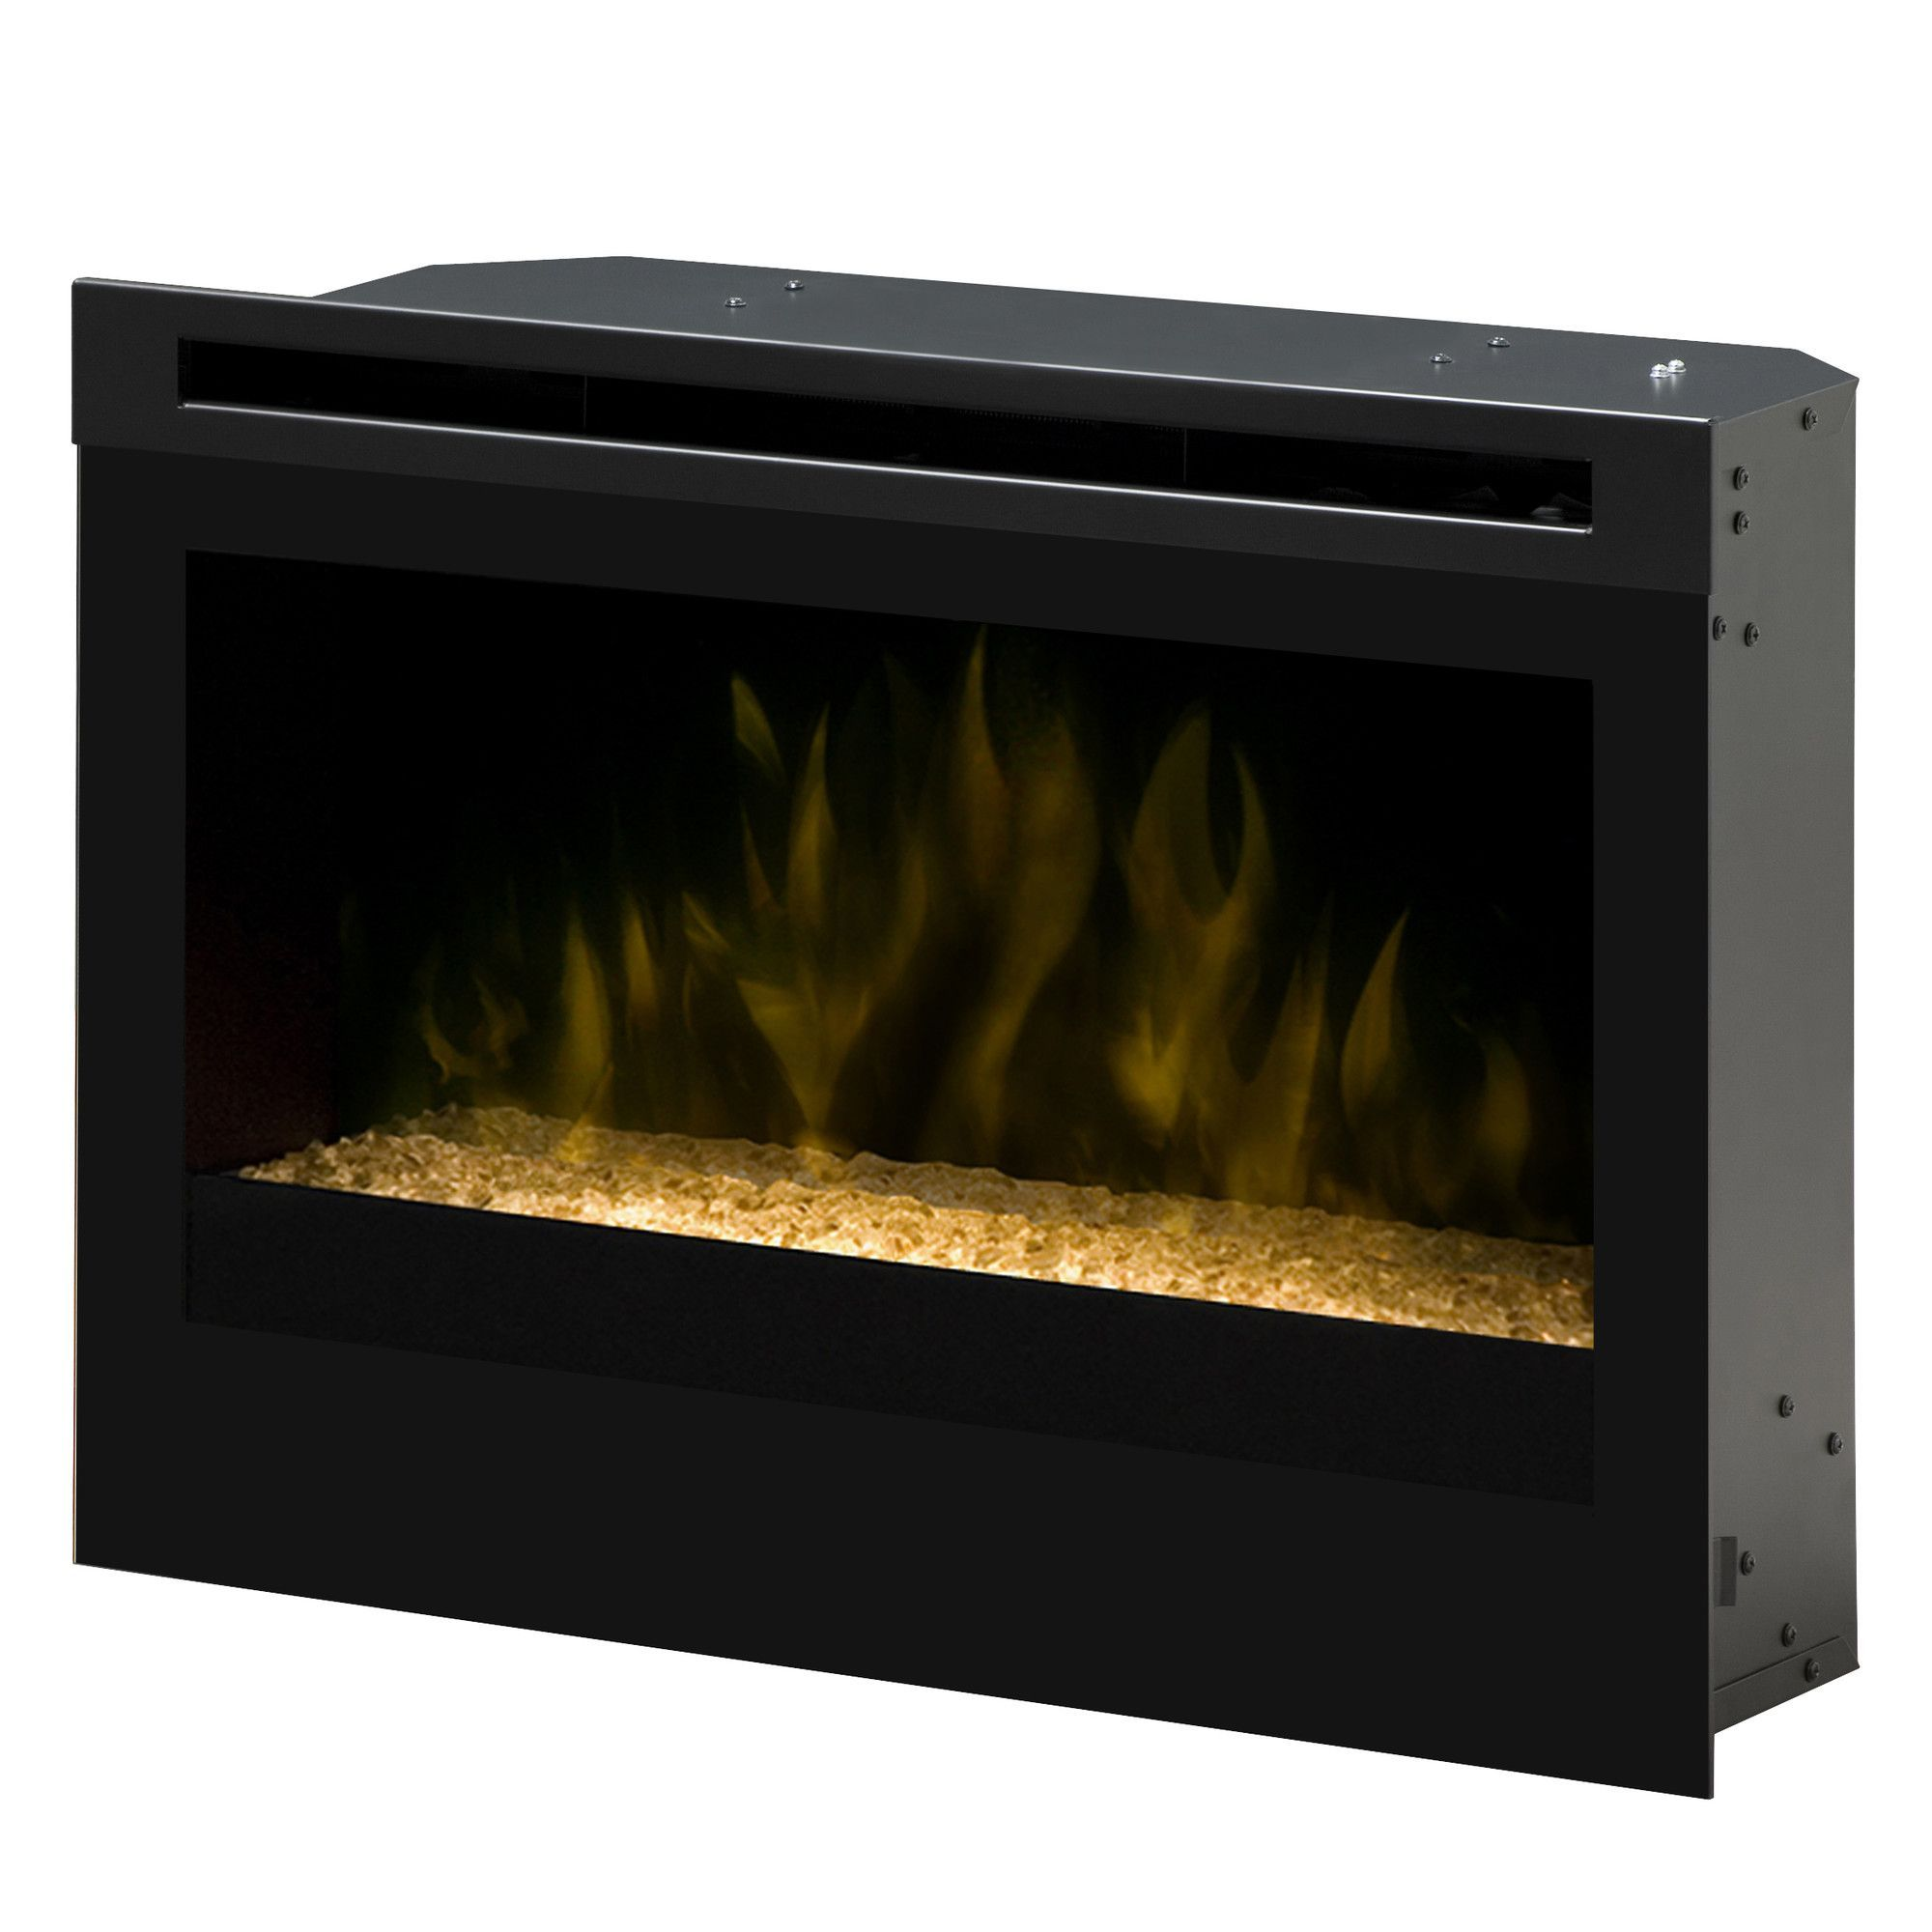 Retro Electric Fireplace Lovely the Latest Concept In Electric Space Heaters the Dimplex